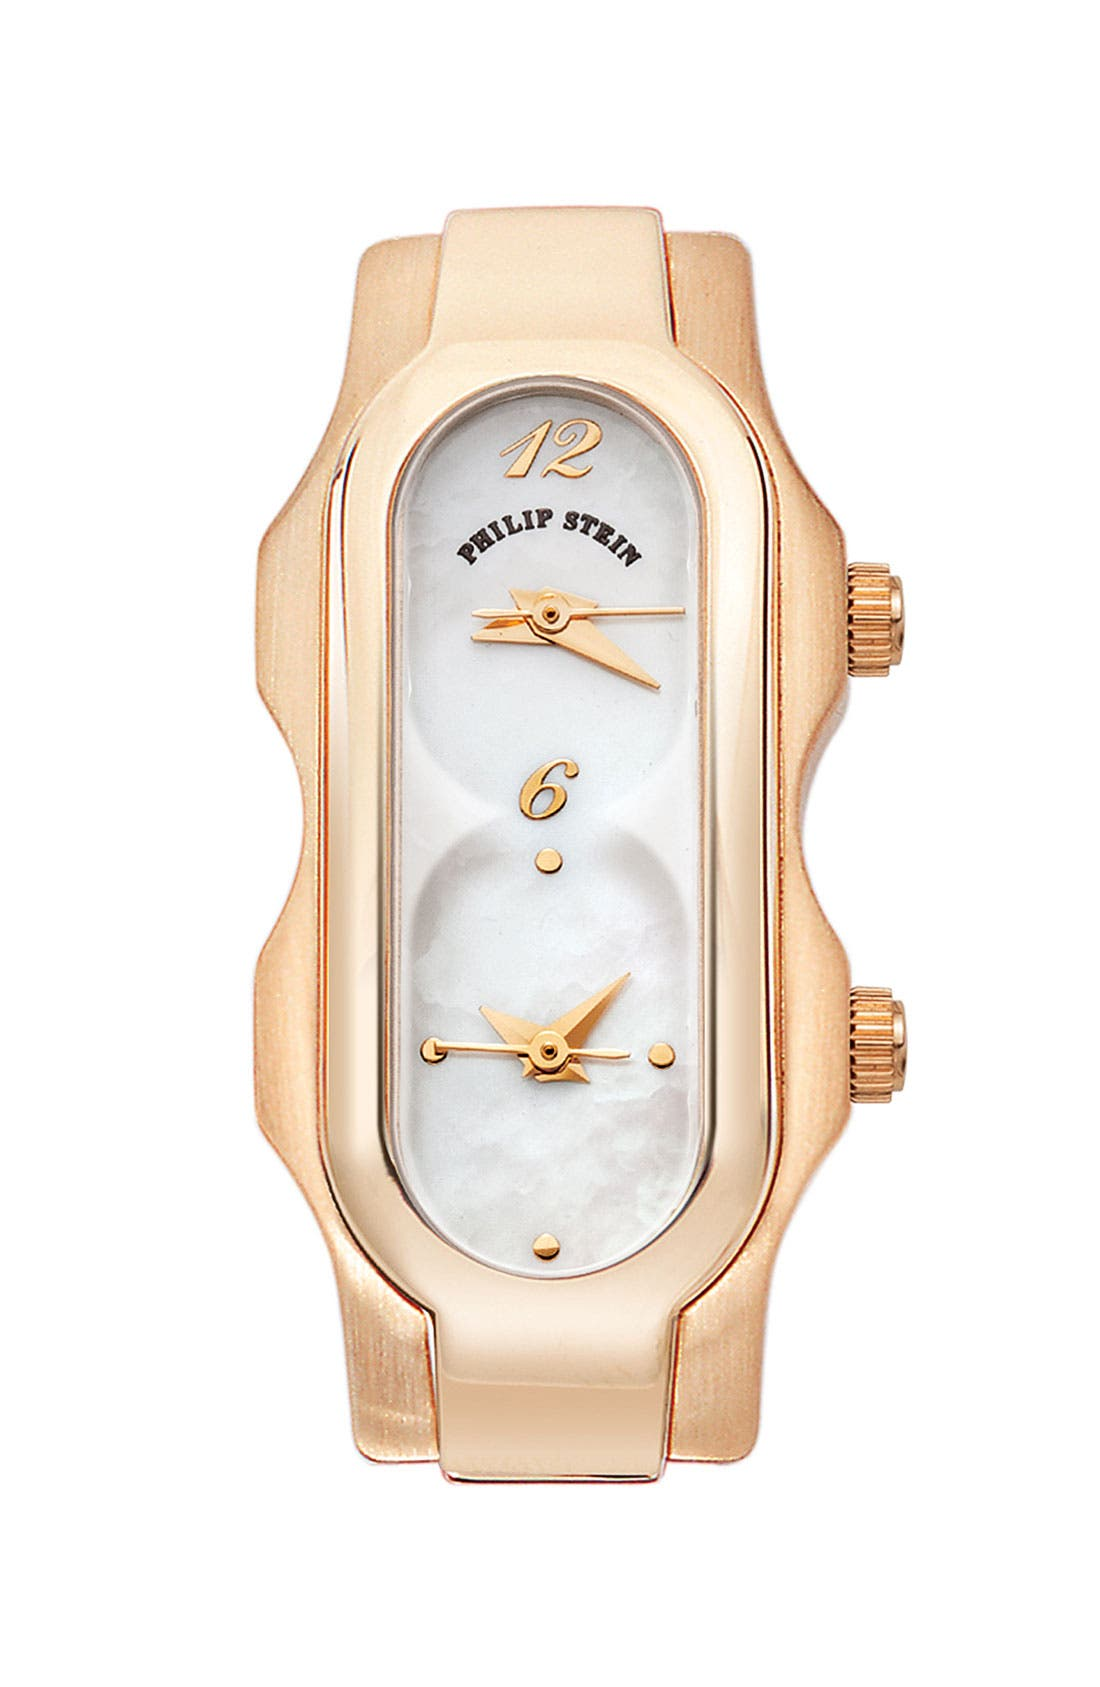 Alternate Image 1 Selected - Philip Stein® 'Signature' Mini Mother-of-Pearl Watch Case